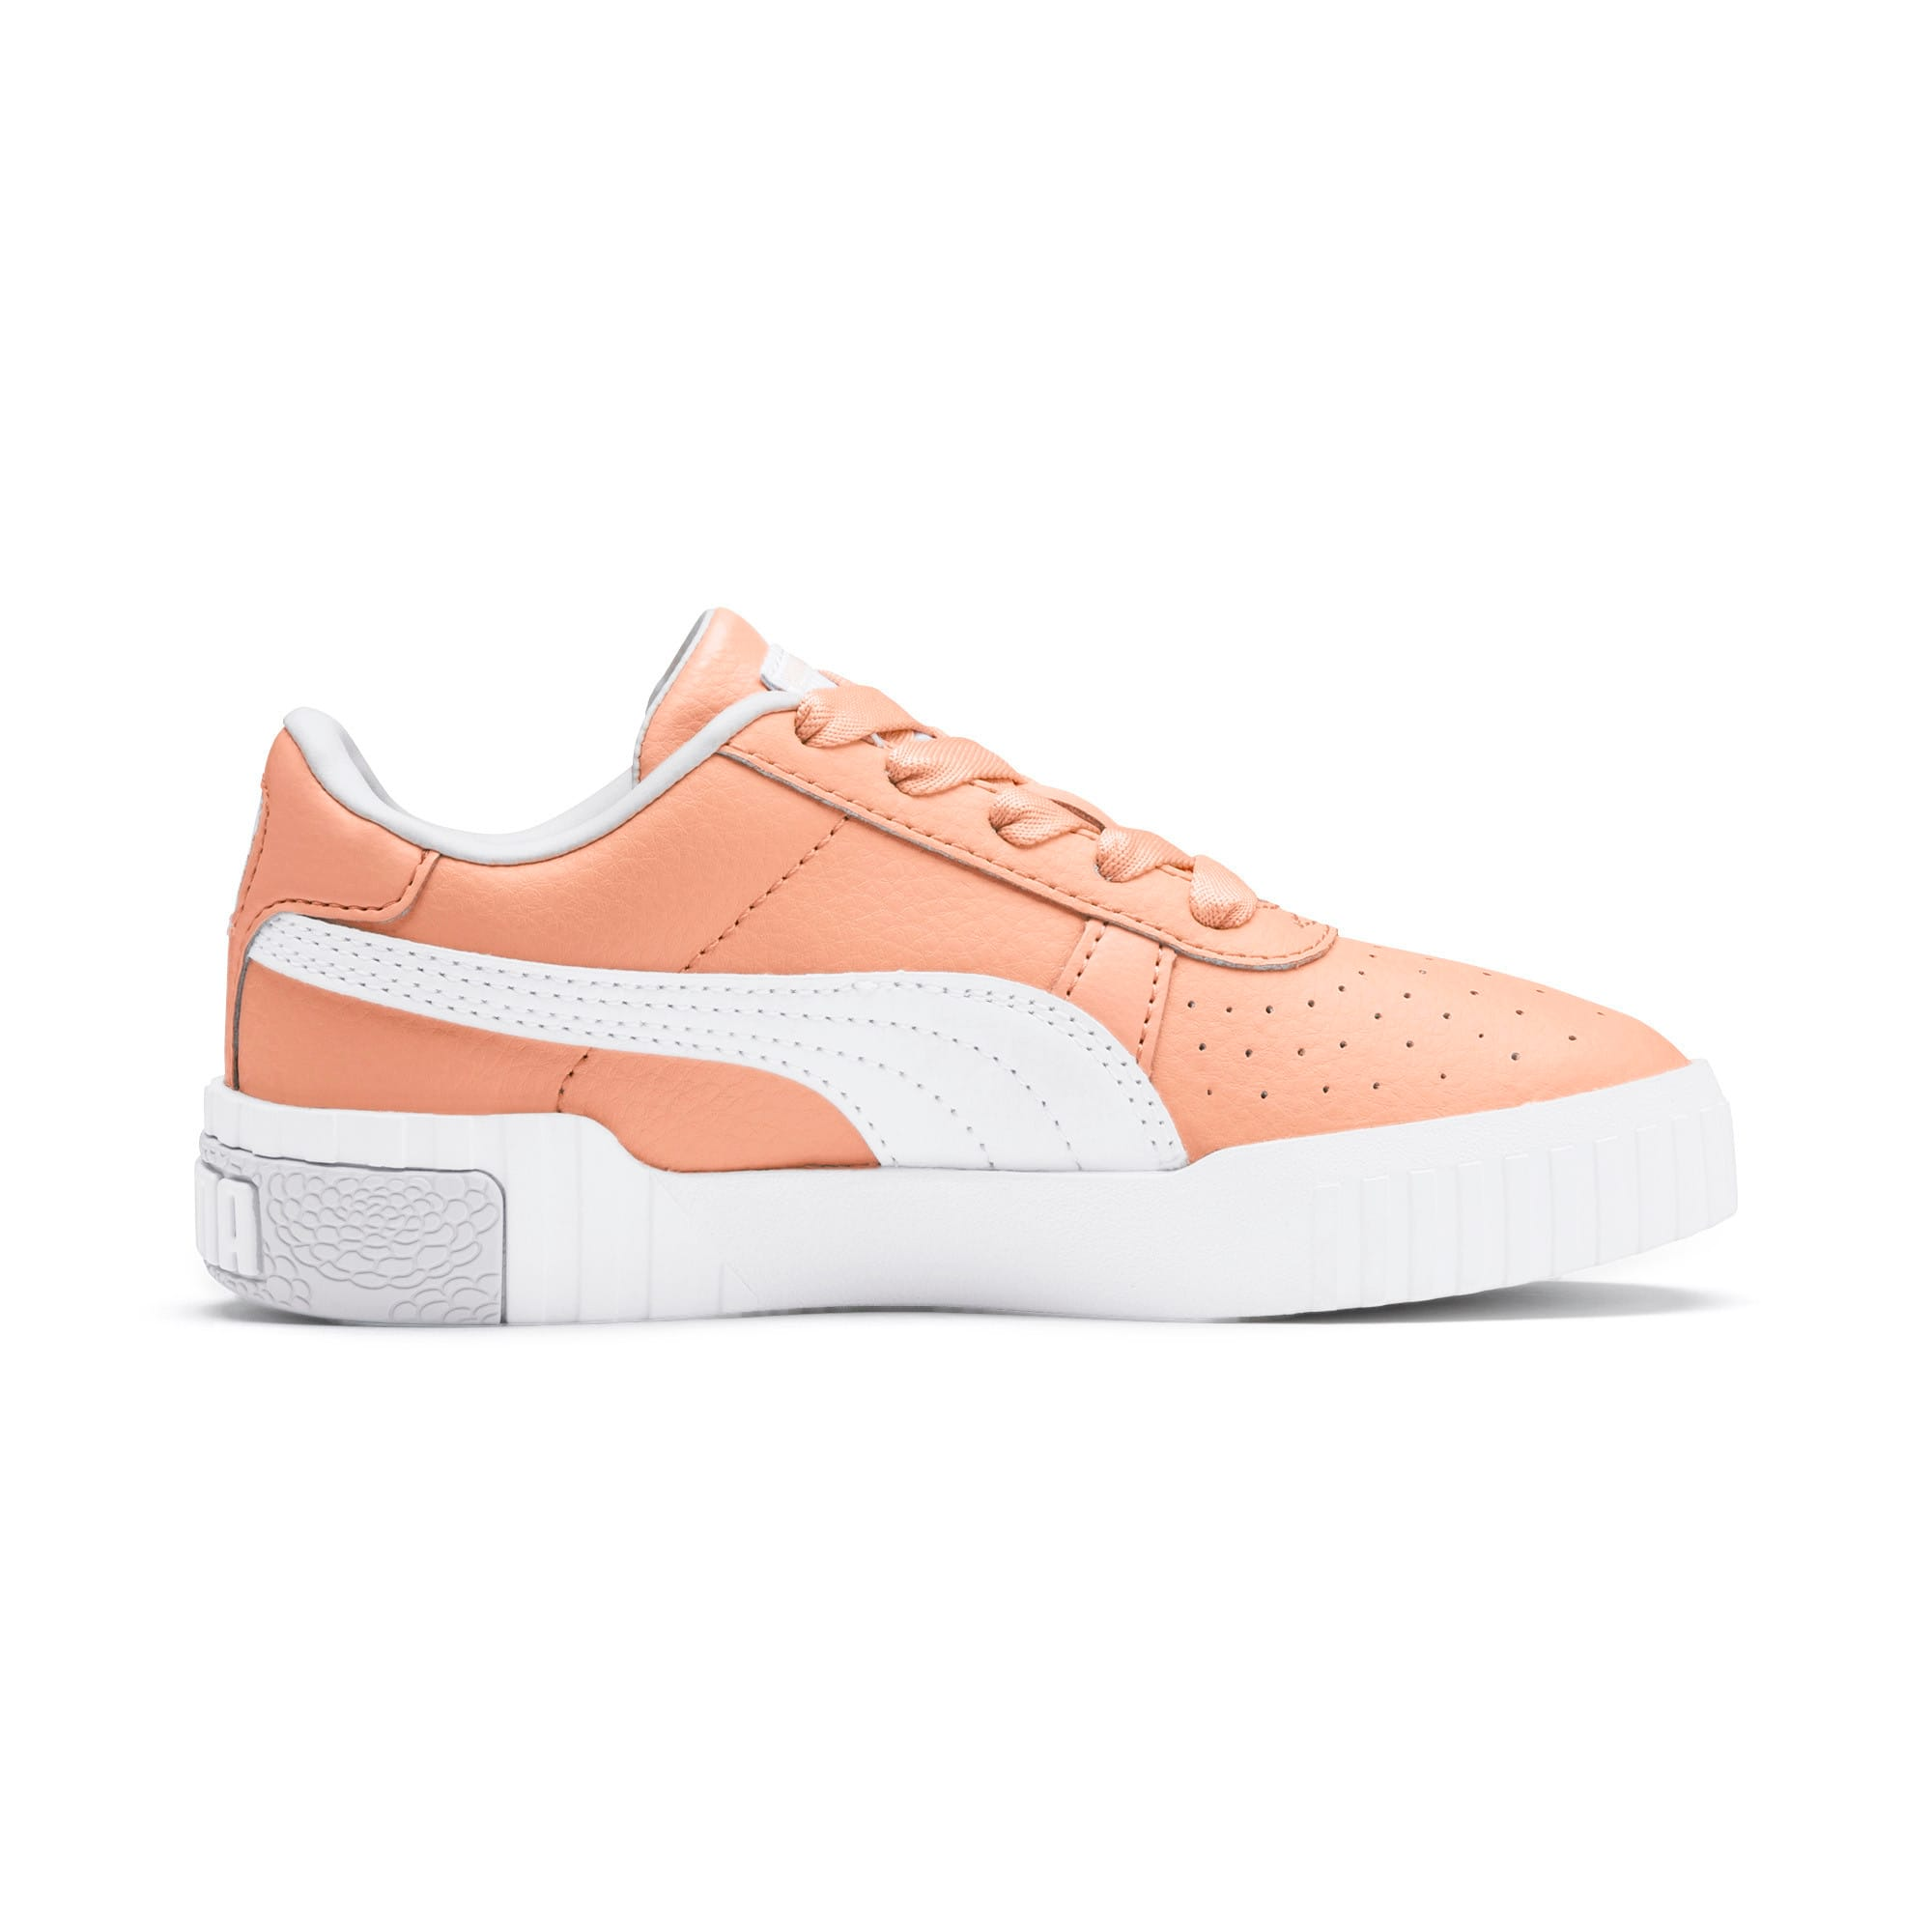 Thumbnail 5 of Cali Girls' Trainers, Peach Parfait-Heather, medium